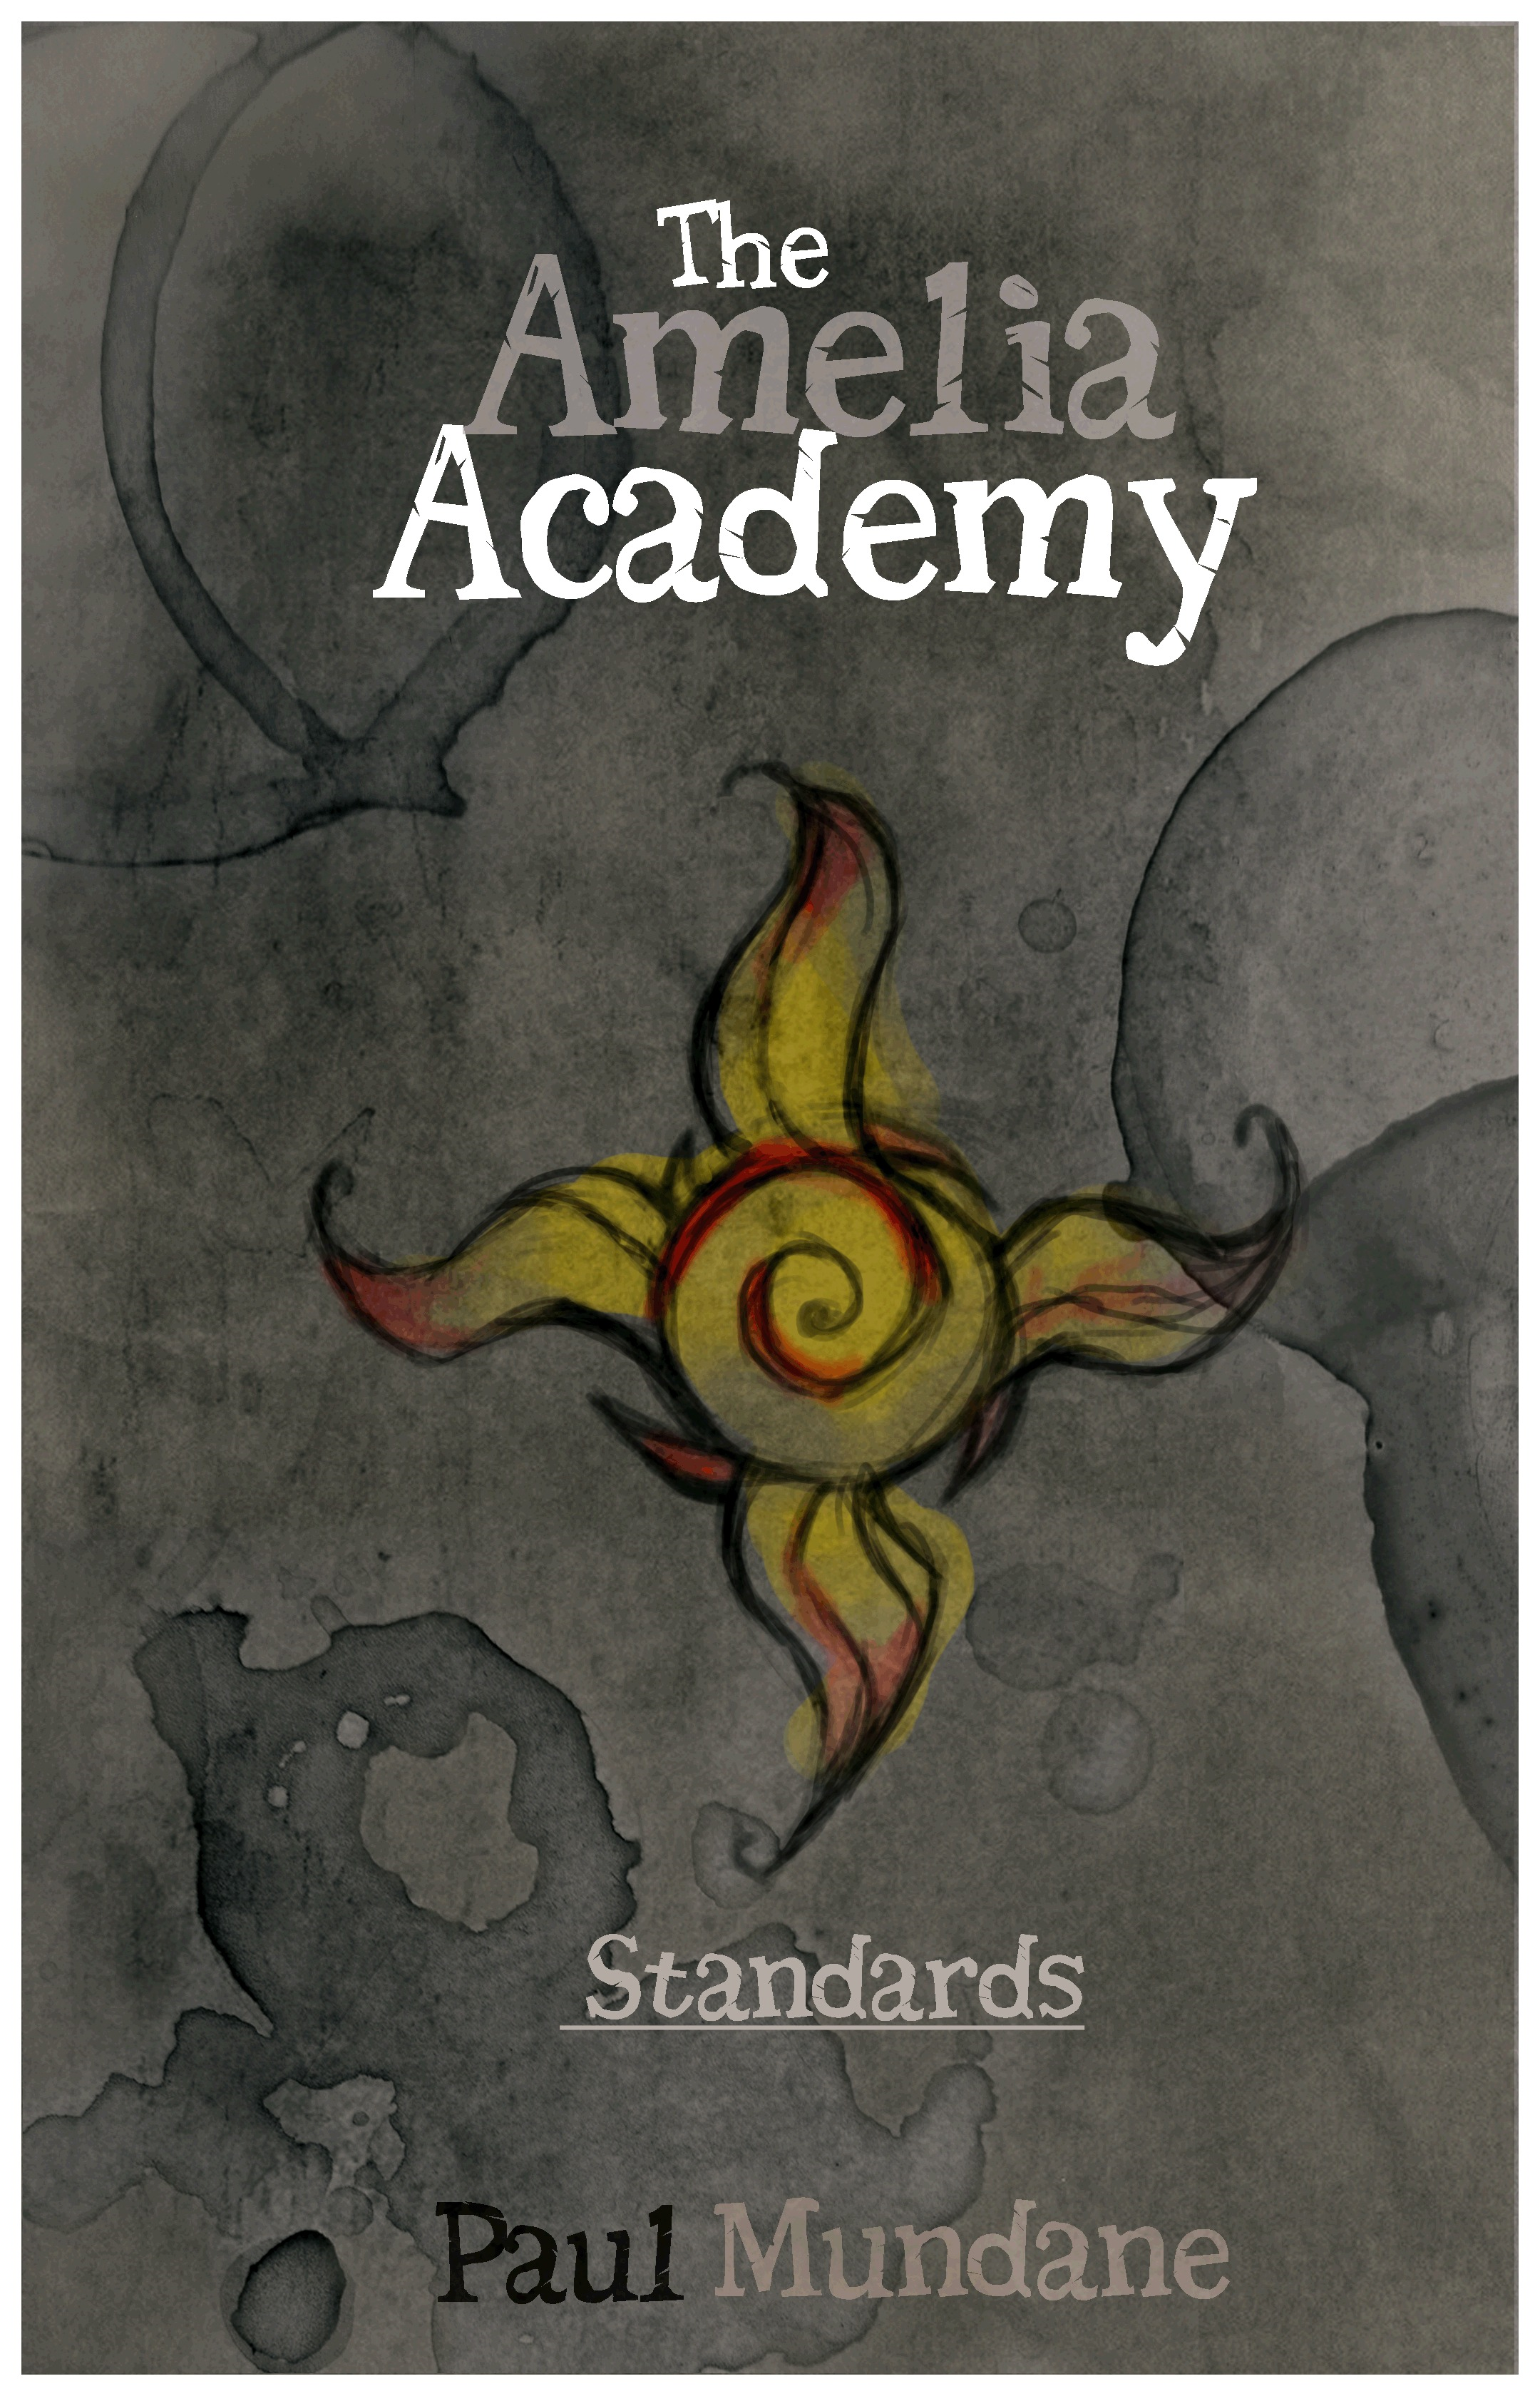 The Amelia Academy: Standards By: Paul Mundane